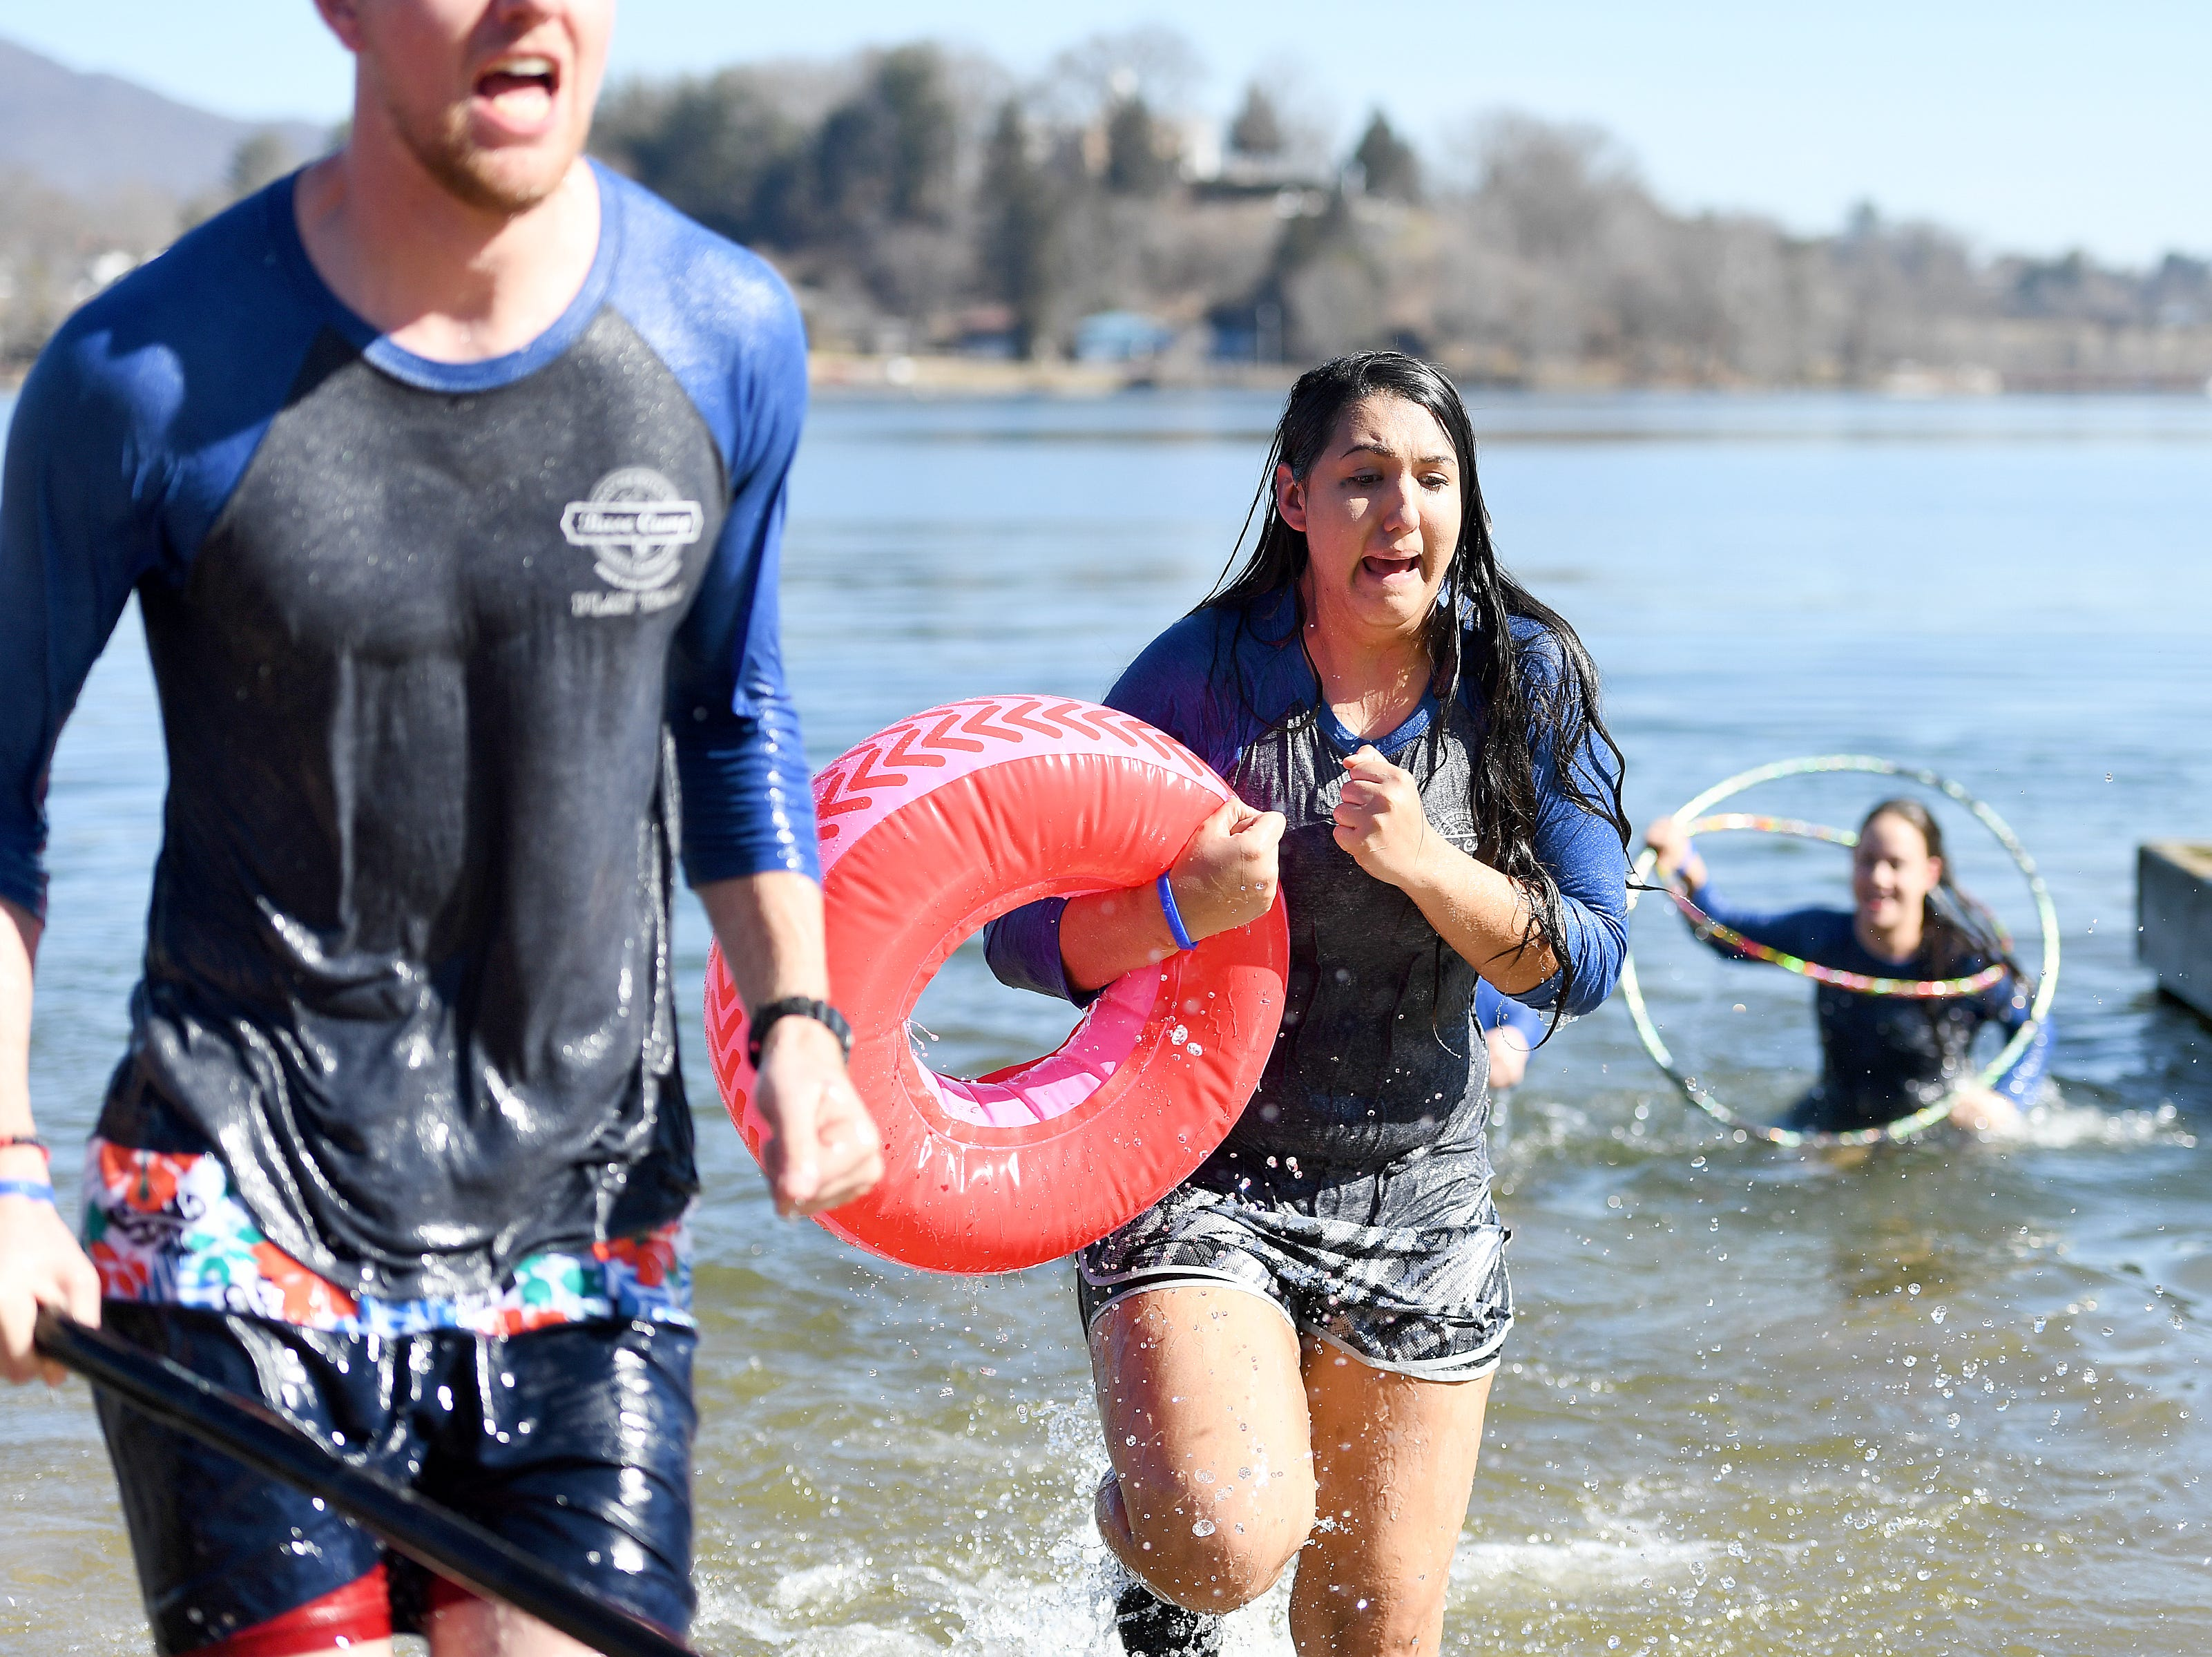 Tori Bugg runs from the chilly water of Lake Junaluska after jumping from the dock with On the Go Basecamp during the 7th Annual Plunge at Lake Junaluska Conference and Retreat Center on Feb. 2, 2019. The event raised more than $30,000 for Kids in the Creek and environmental education.